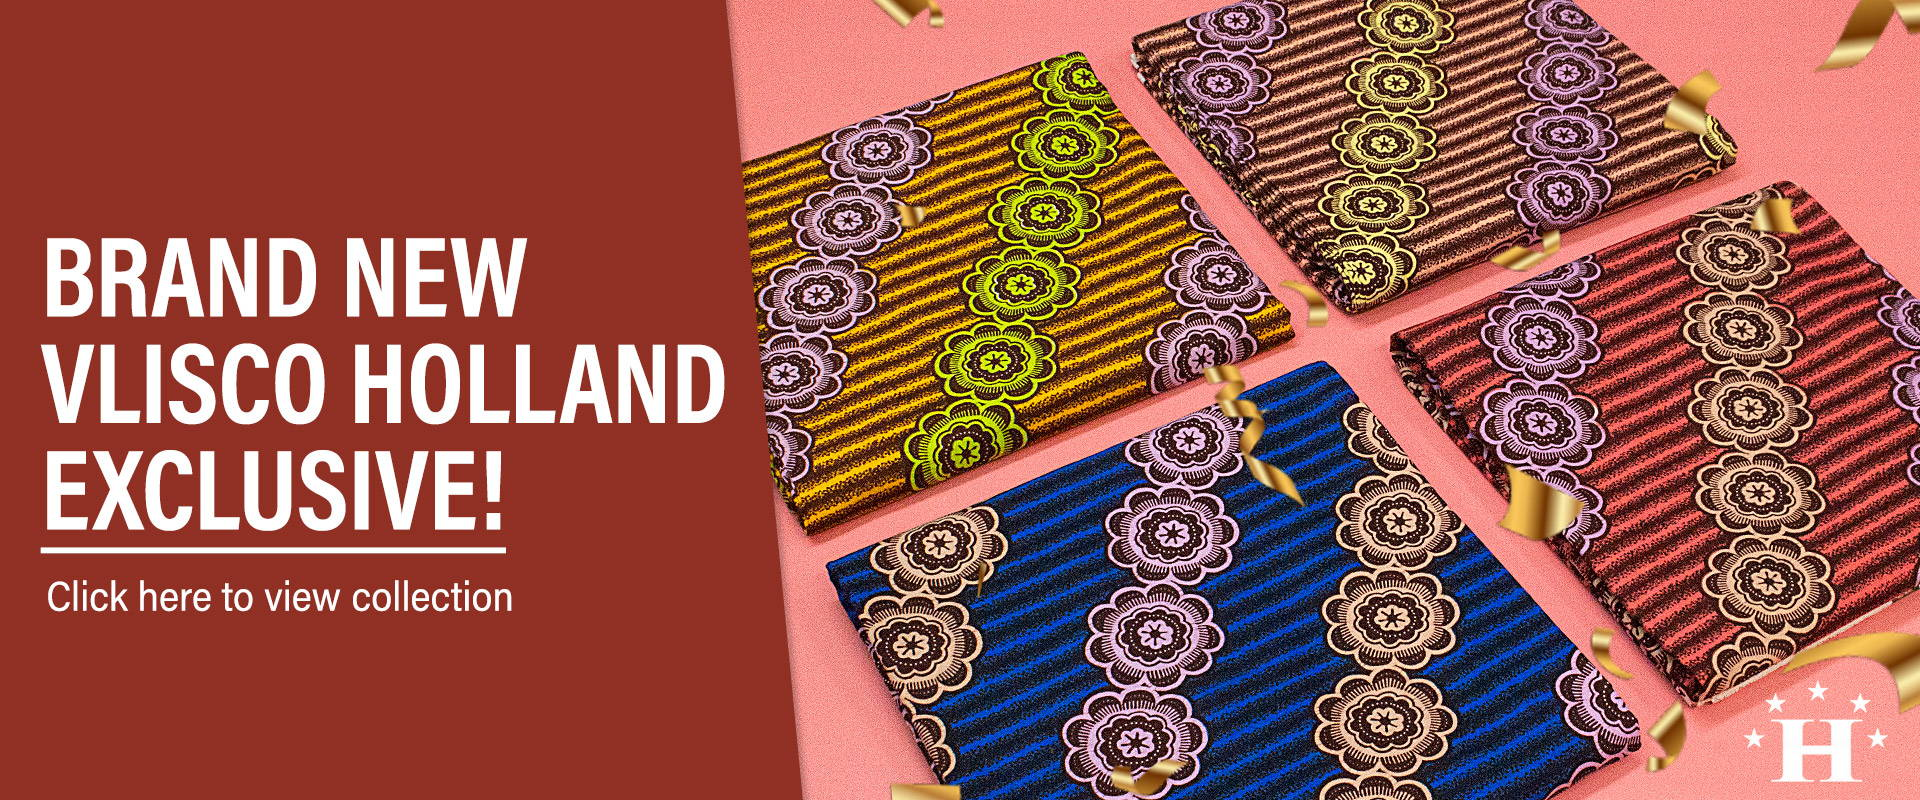 vlisco holland exclusive wax design available now at Hilton Textiles. Click Here!